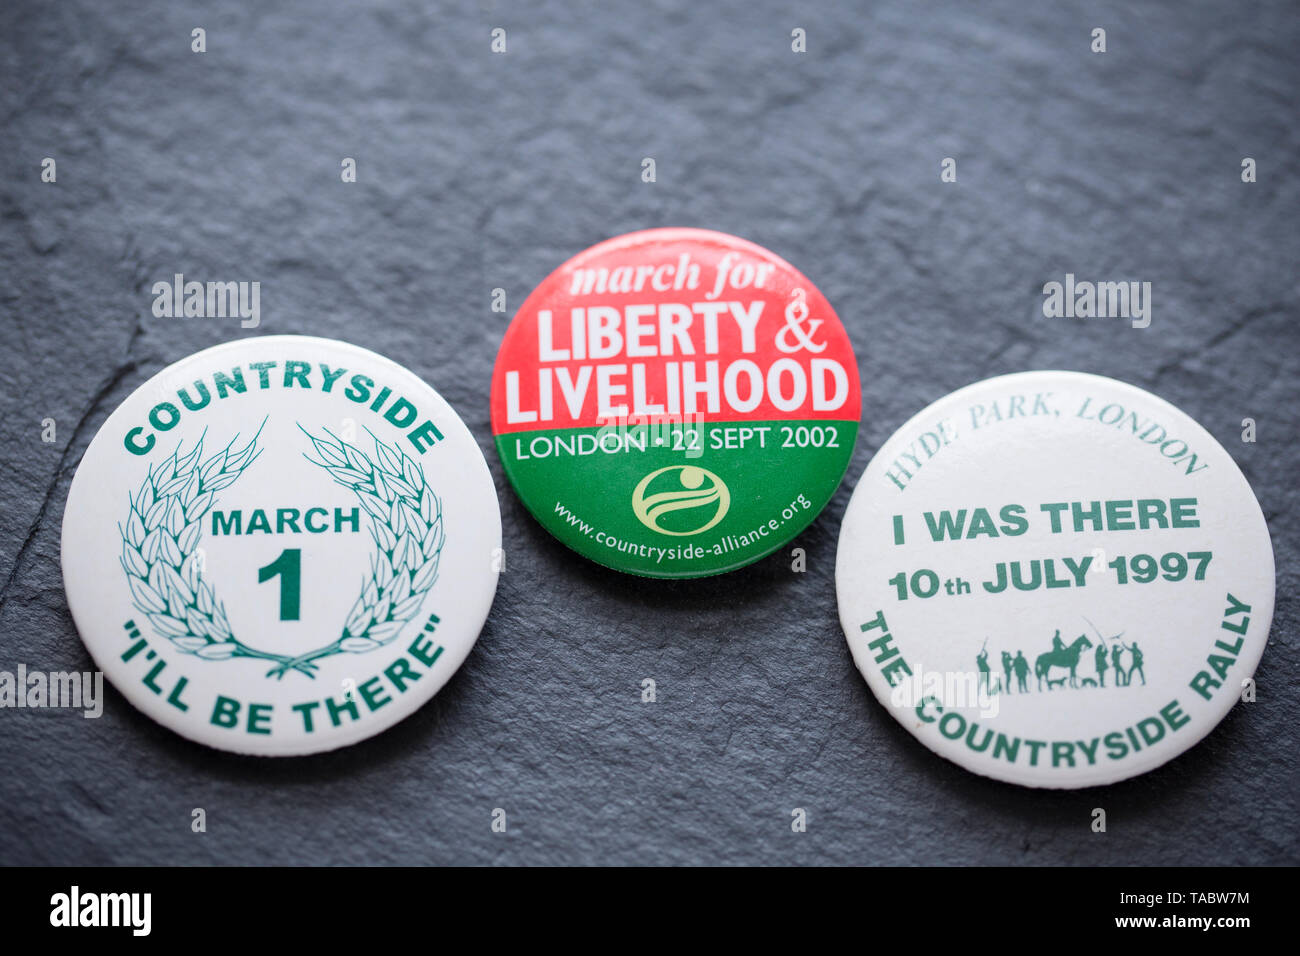 Pro-hunting badges that were made between 1998 and 2002 in relation to the proposal to ban hunting with dogs in the UK. A pro-hunt rally in 1997 in Hy - Stock Image